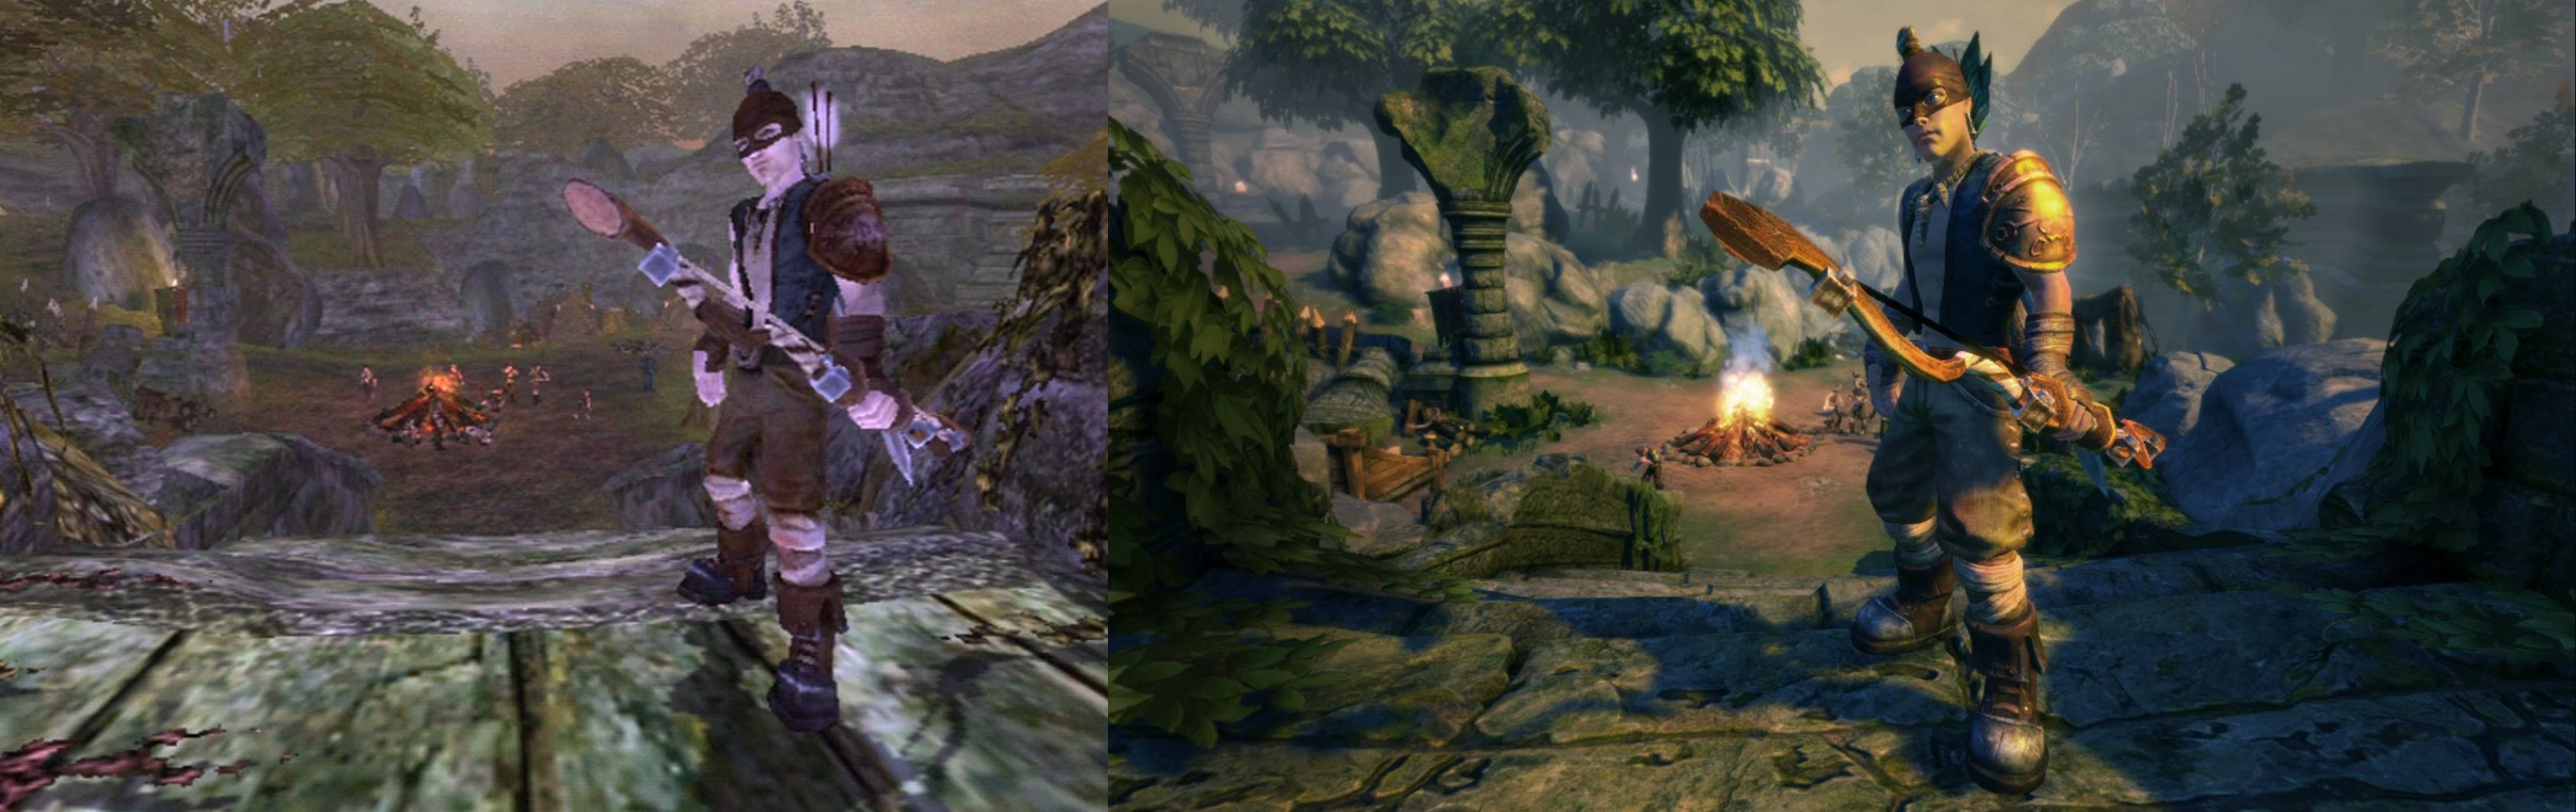 Achievement Unlocked Achievements Are Now Unlocked In The New Fable Anniversary For Xbox 360 Fables Painting Art